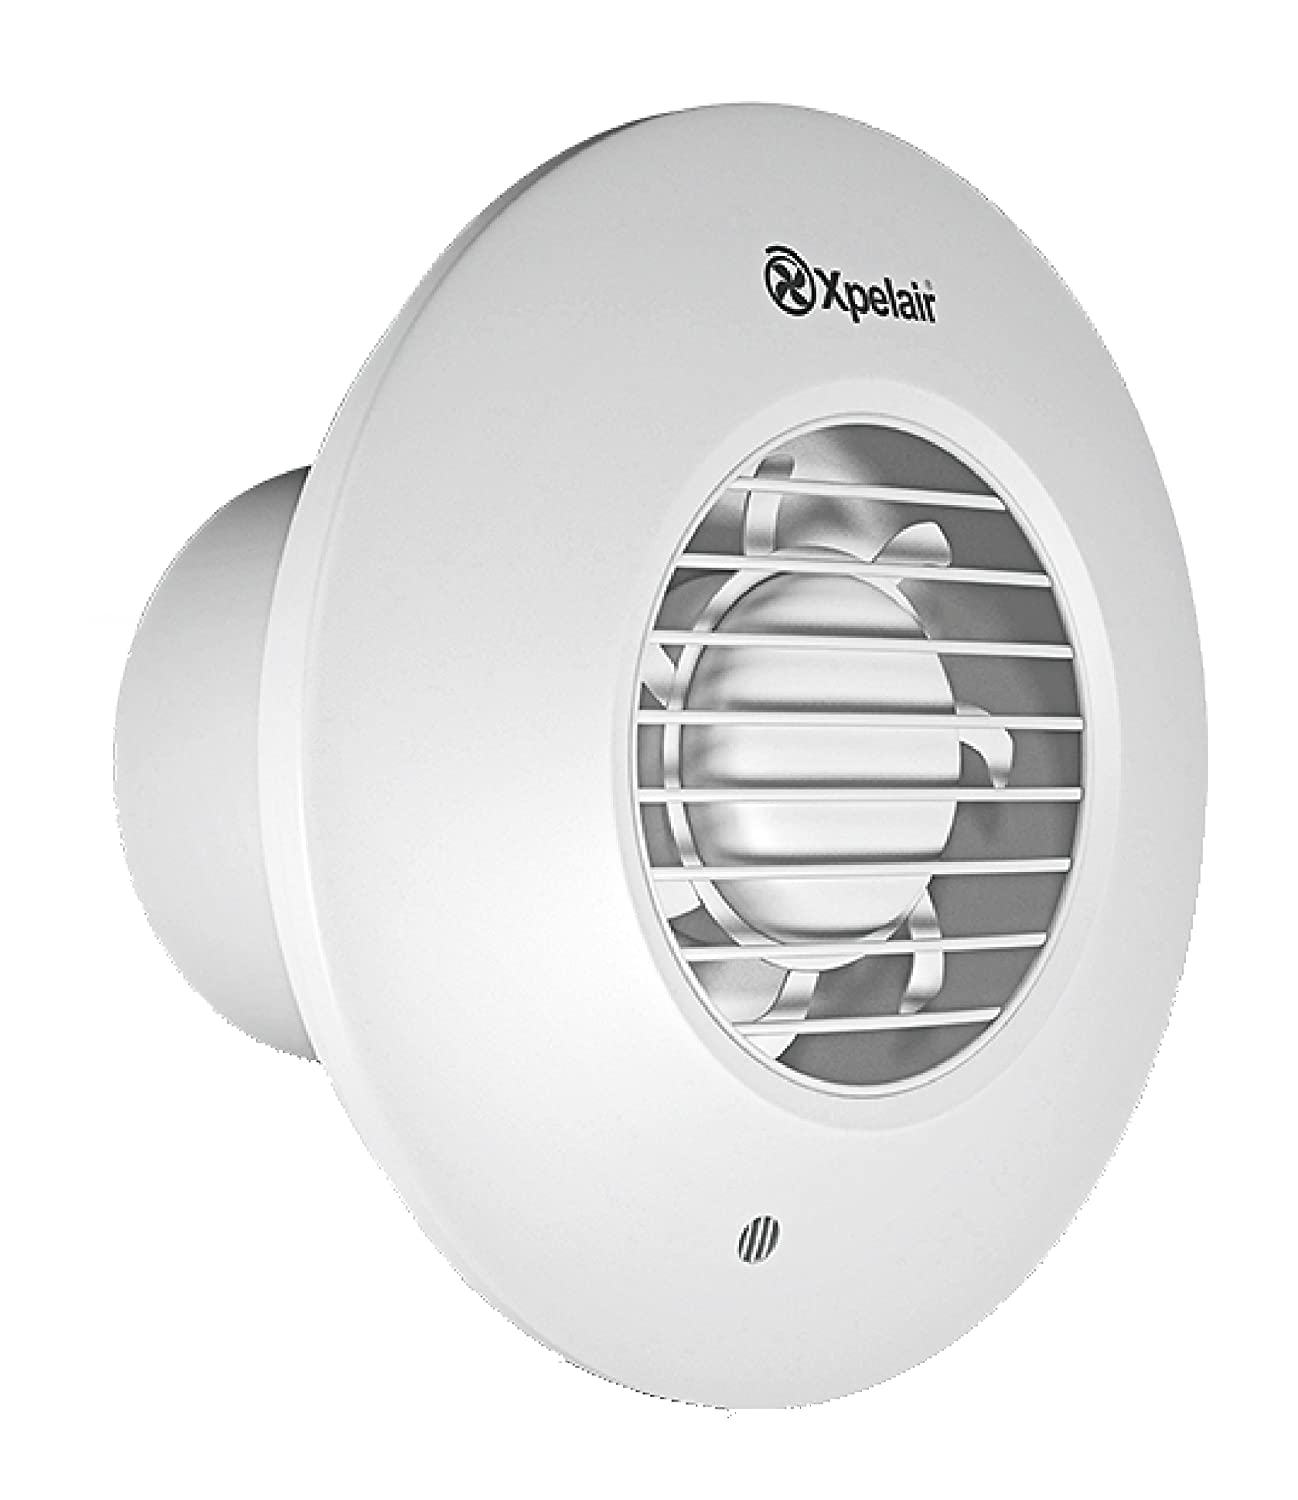 Xpelair DX100BR 4 inch (100mm) Simply Silent DX100B Bathroom Fan-Standard Round, Cool White Redring Xpelair Group